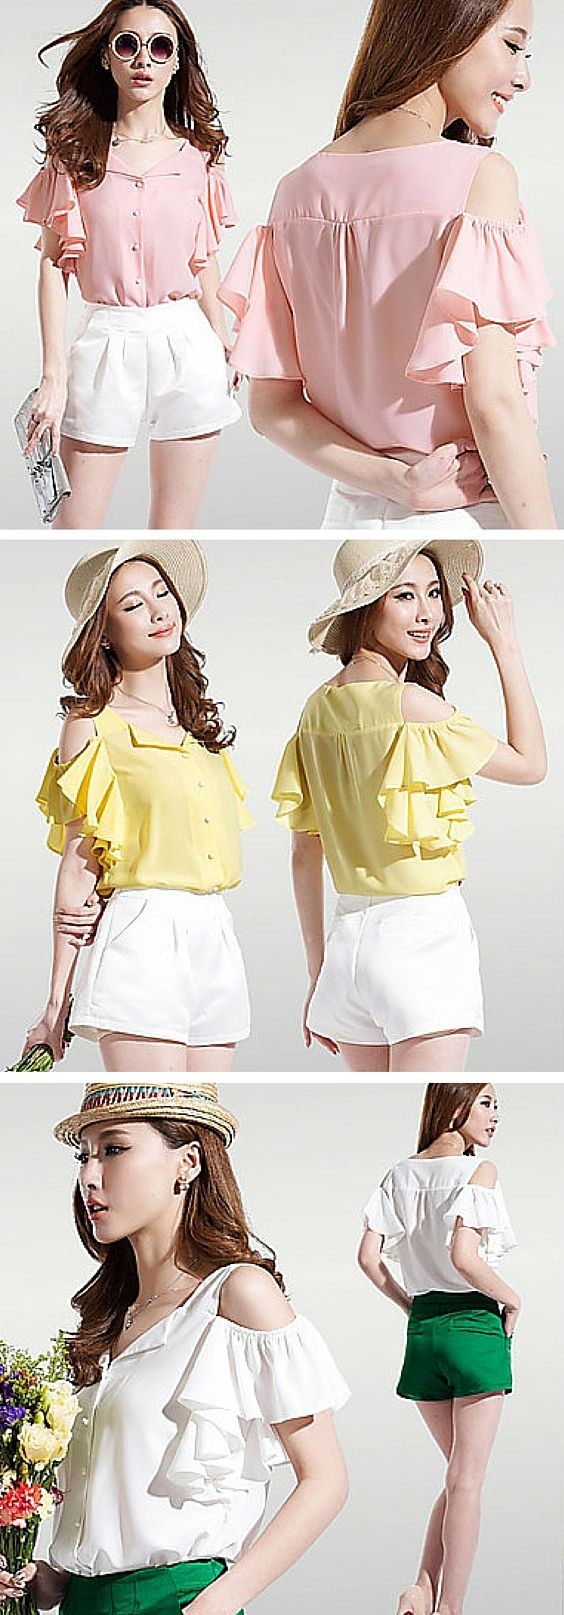 Off the shoulder ruffle sleeve top. This blouse is so light, effortless and lovely. It looks gorgeous with white shorts or skirt. Get it in pink, yellow or white.